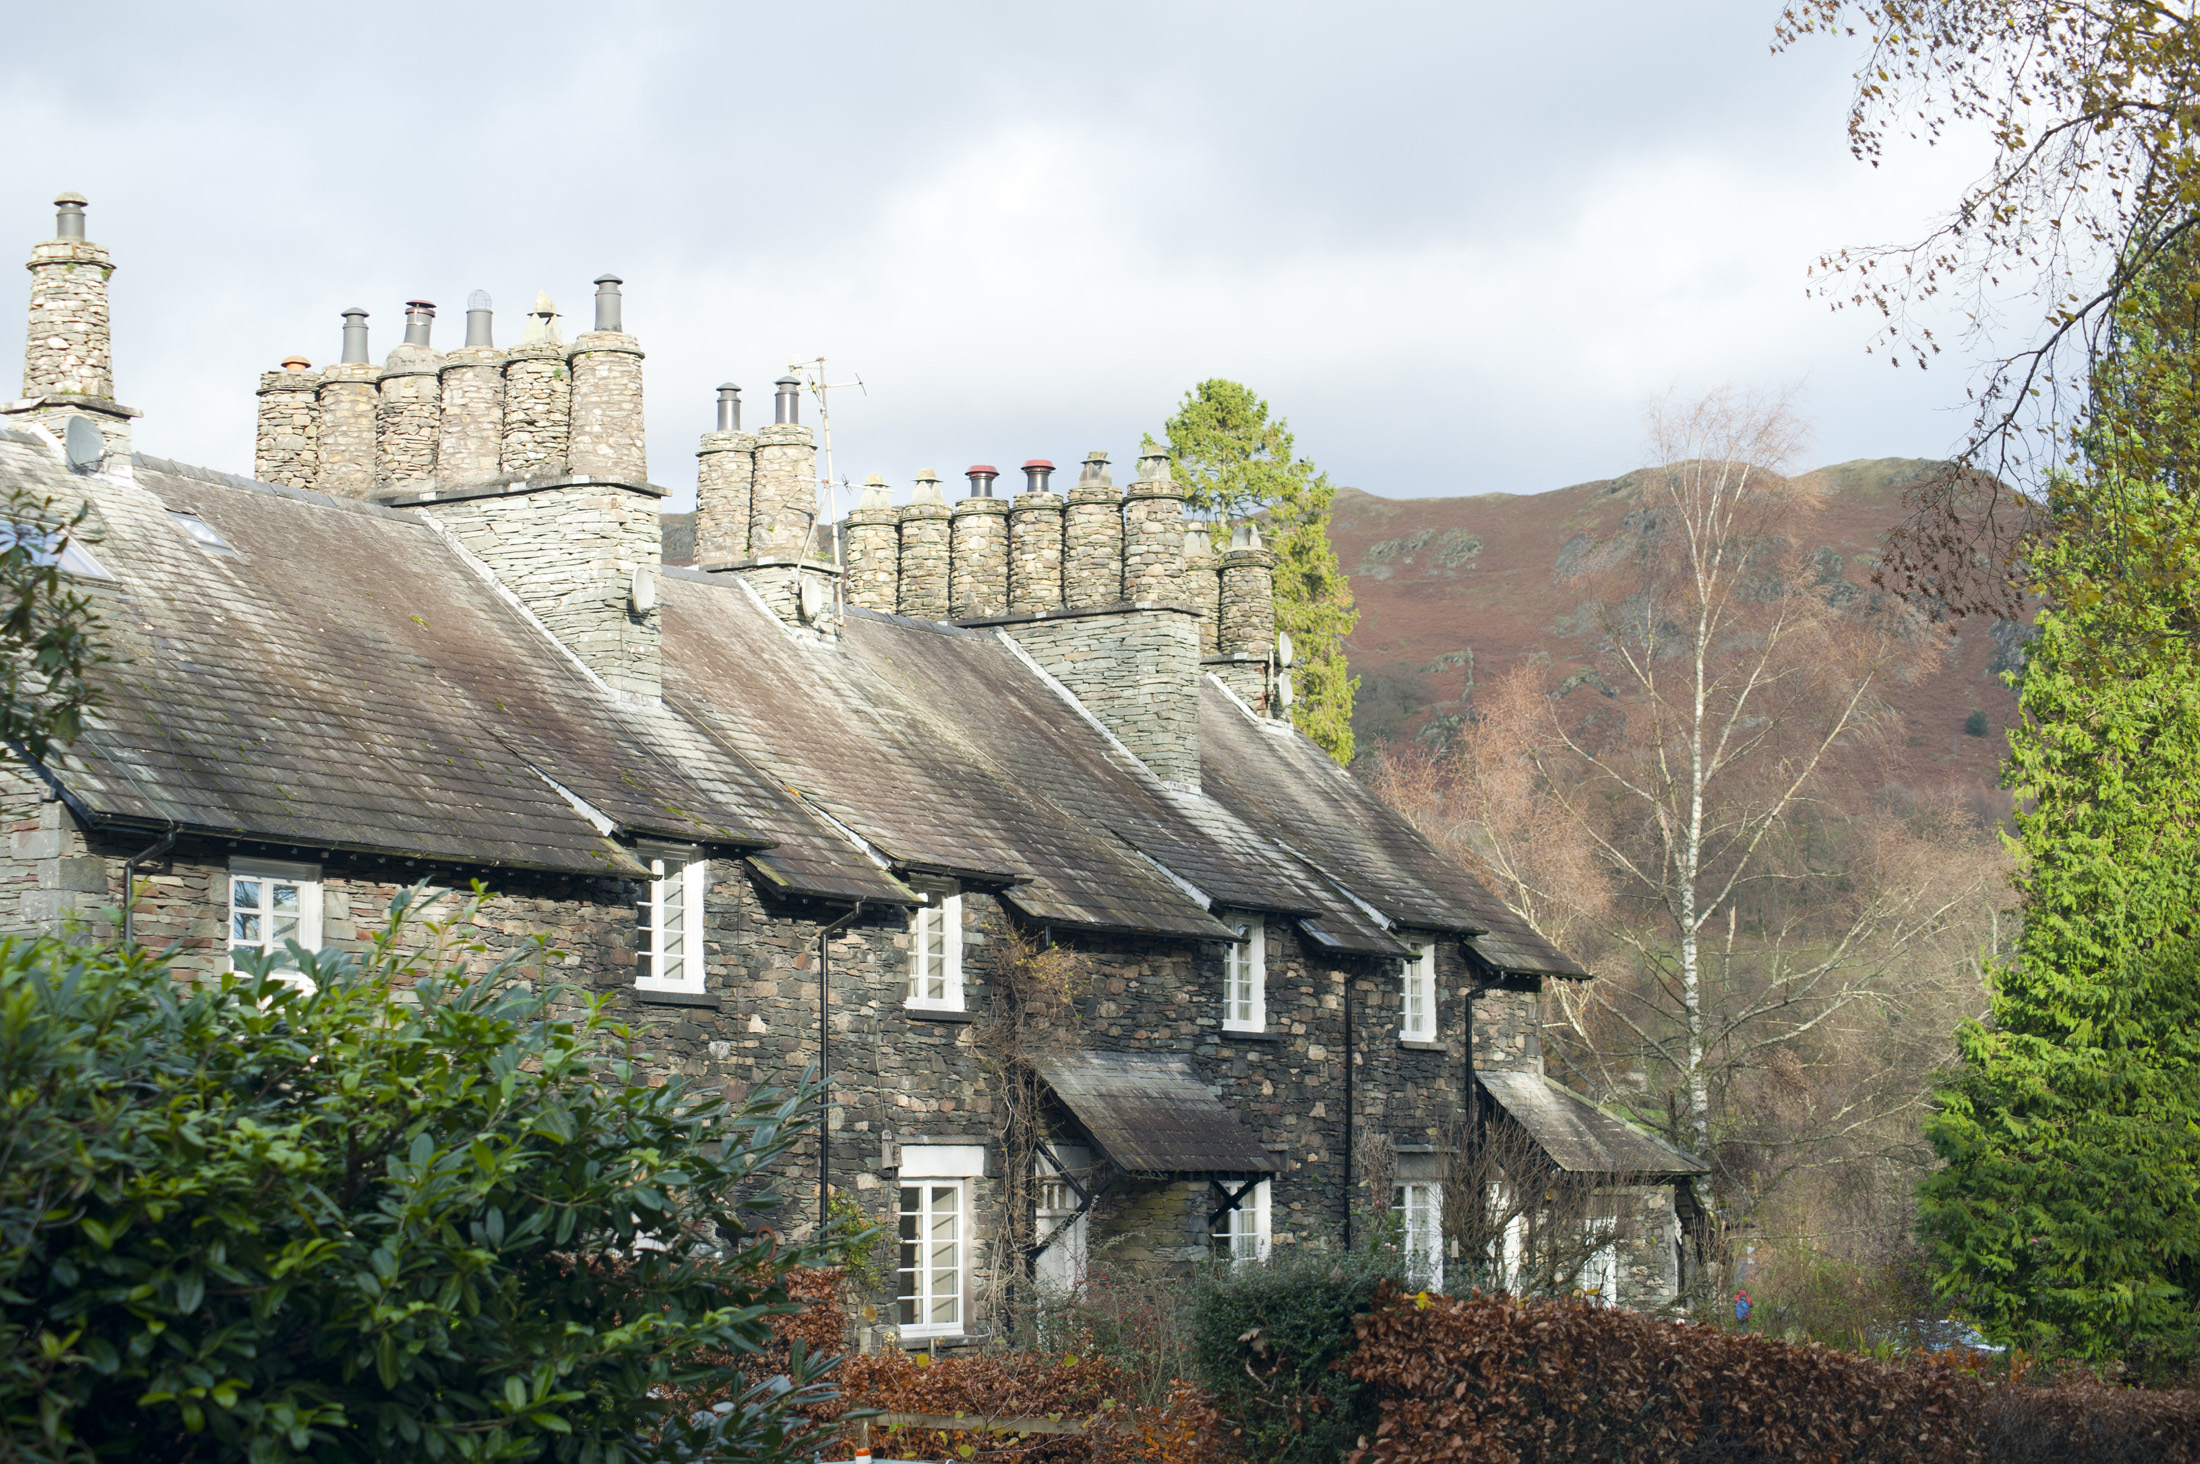 Picturesque row of English stone cottages at Skelwith Bridge in the Lake District in Cumbria with traditional round stone chimney pots